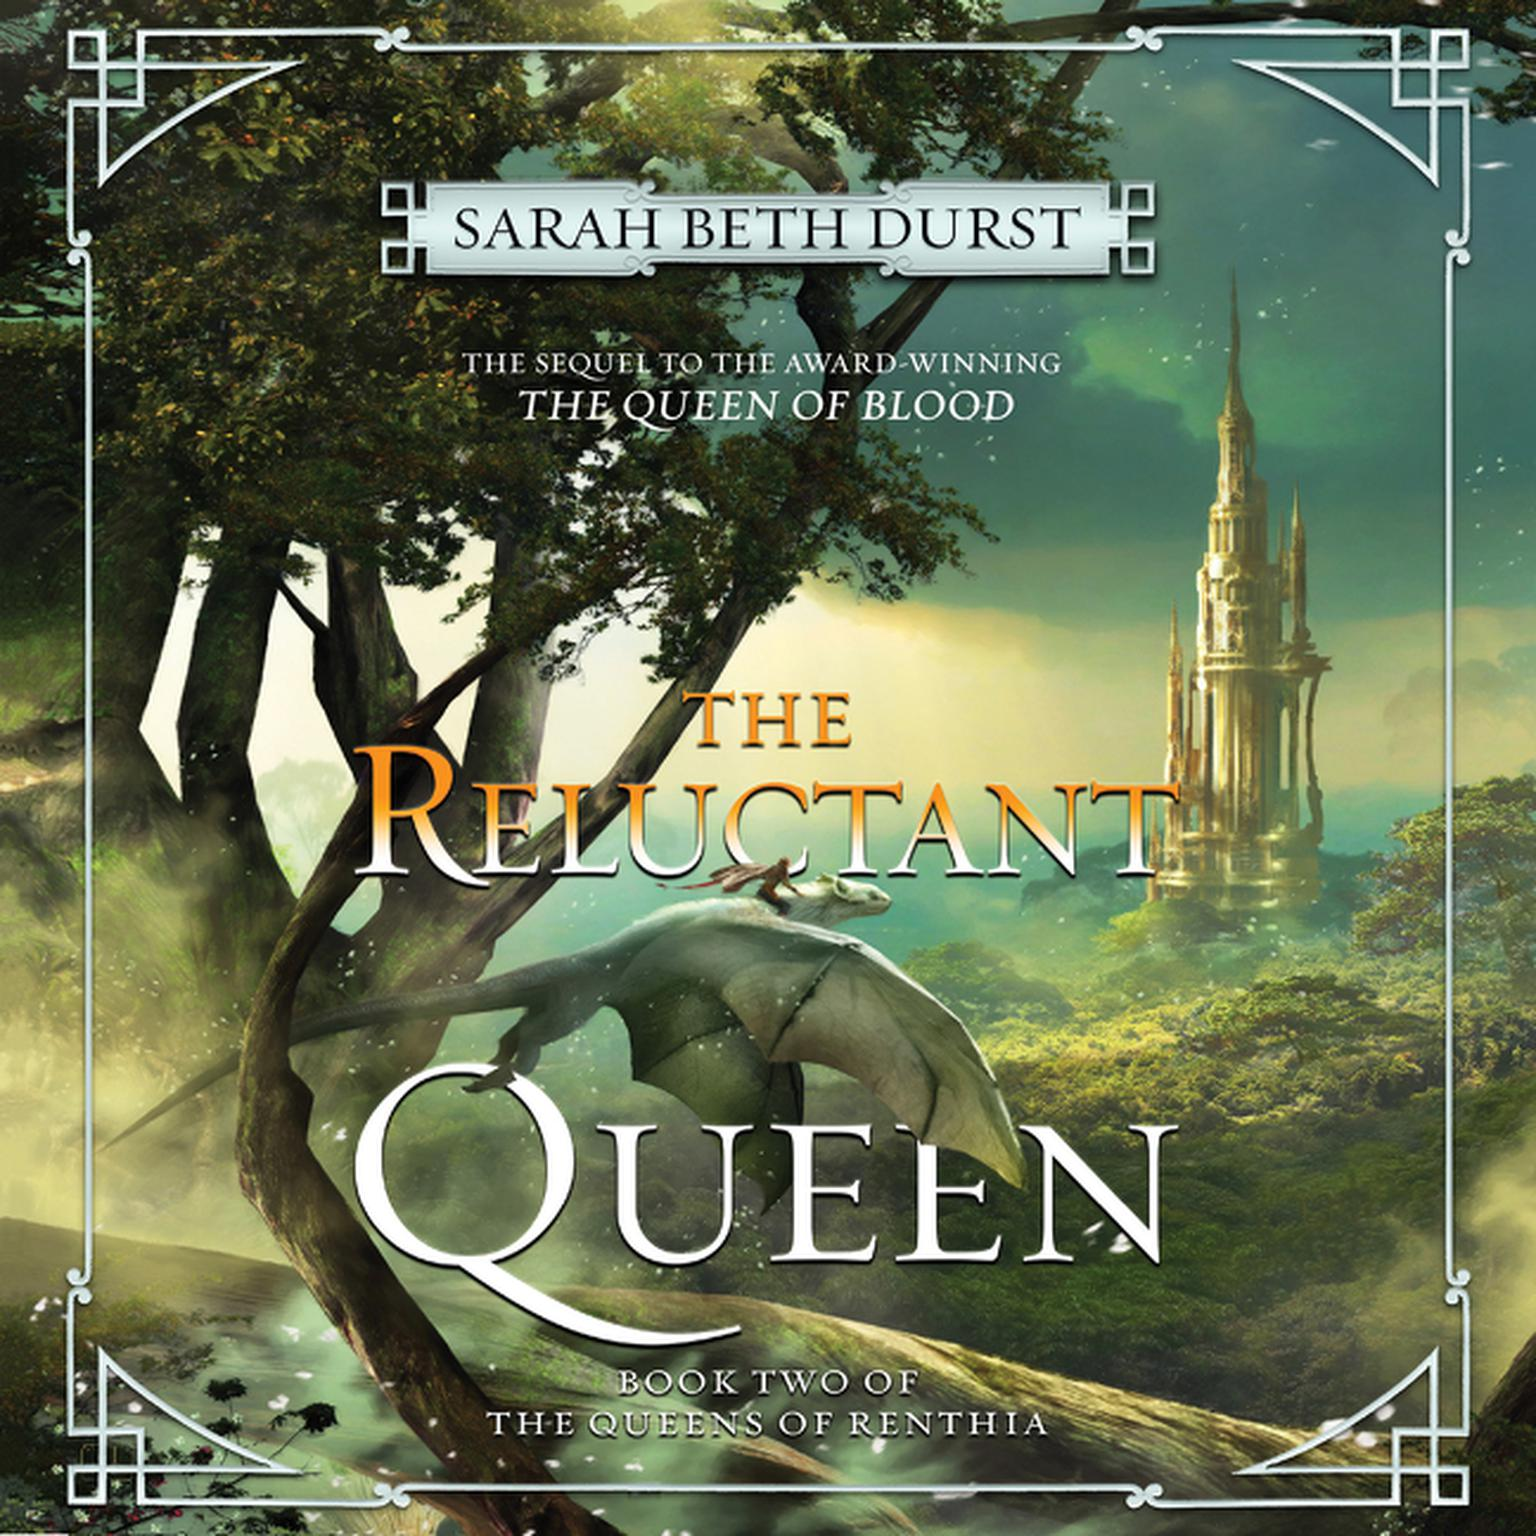 Printable The Reluctant Queen: Book Two of The Queens of Renthia Audiobook Cover Art